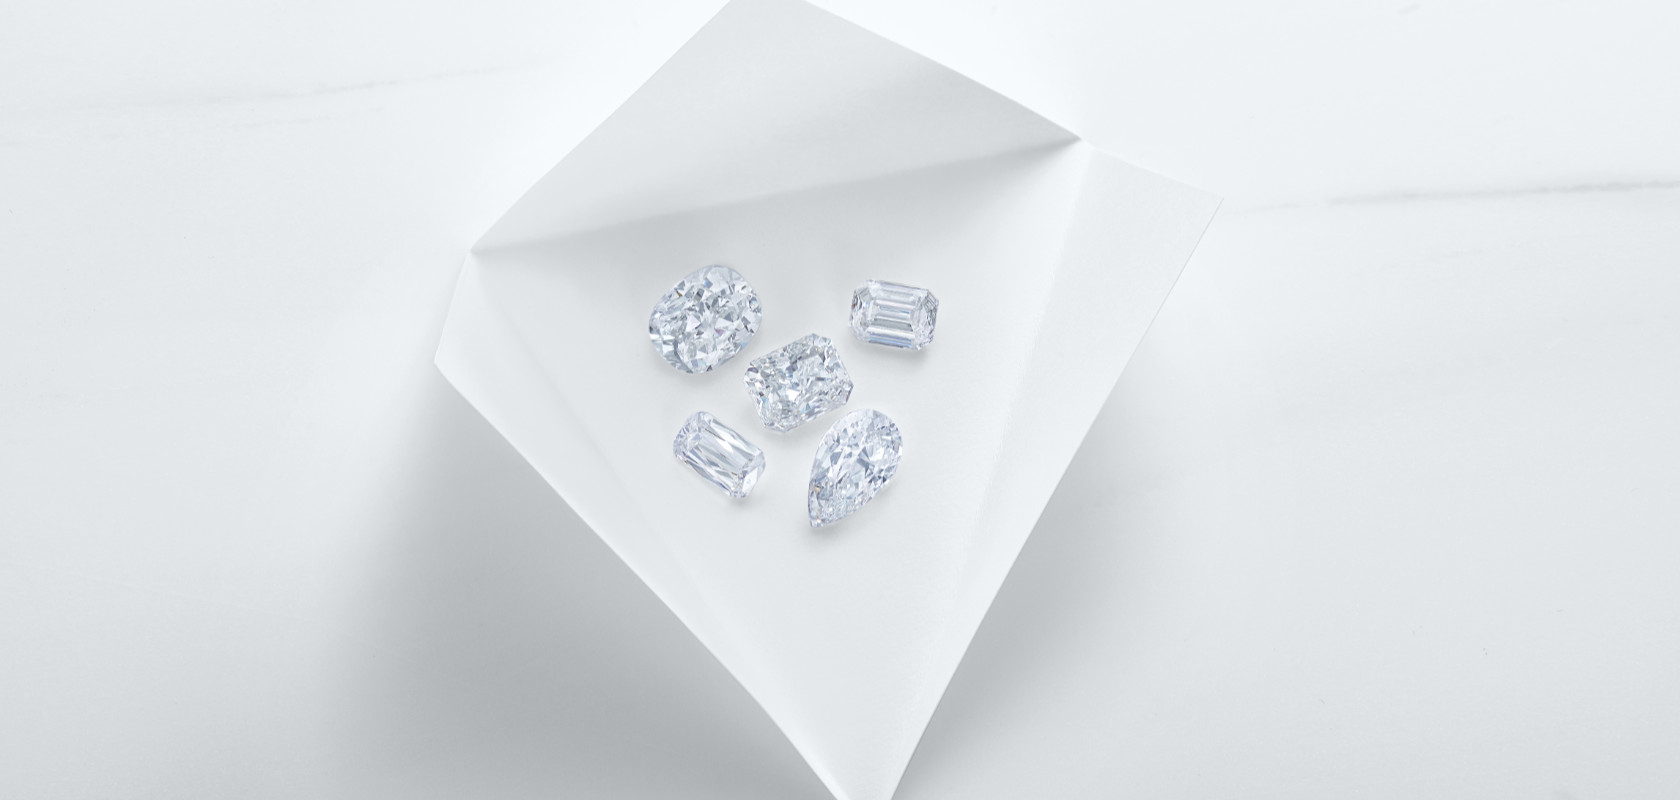 Conflict Diamonds and the Kimberley Process